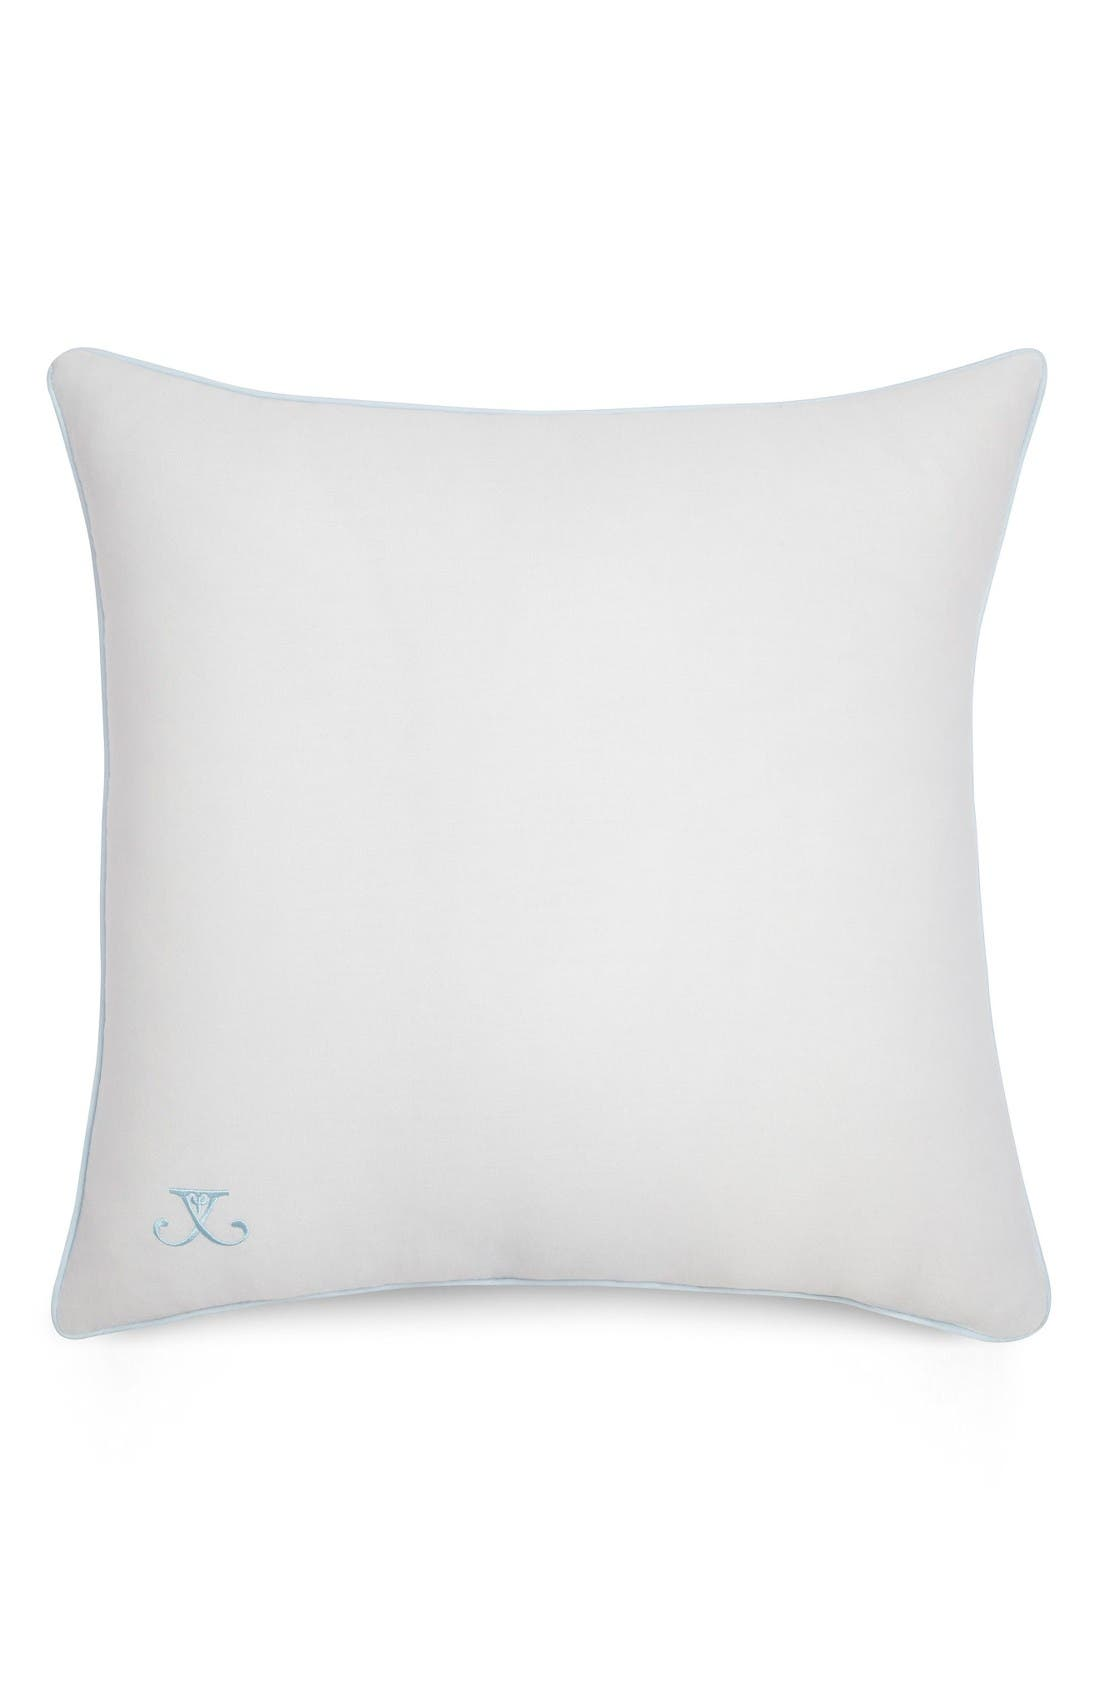 Jill Rosenwald Sugarhouse Logo Accent Pillow